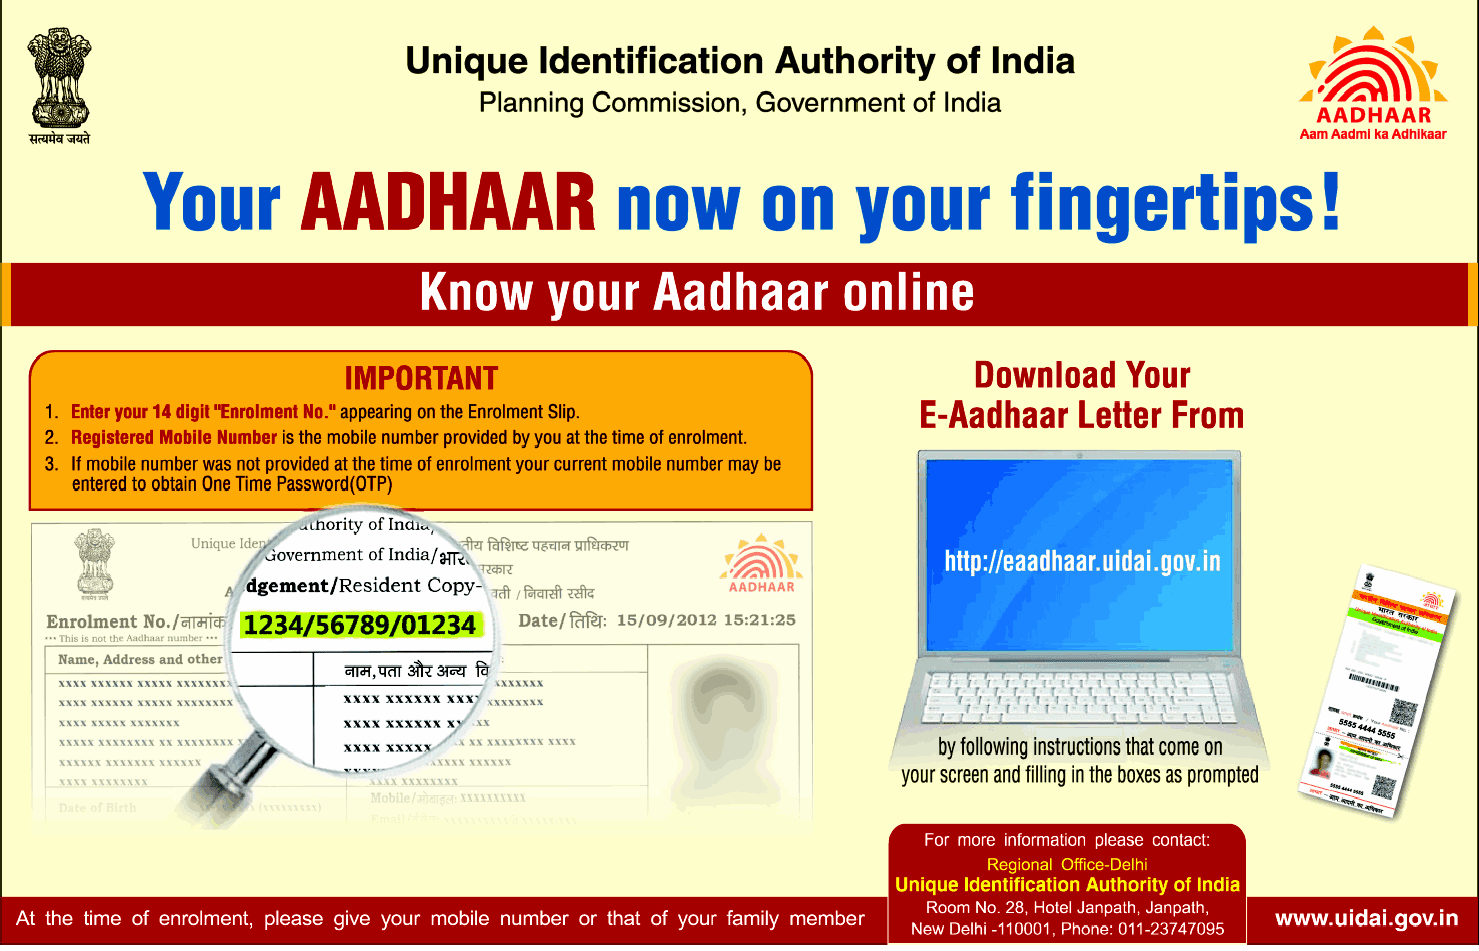 aadhar card, apply aadhar card online, aadhar card mobile number change, aadhar card websites, aadhar card official website, aadhar card news, aadhar card validation,